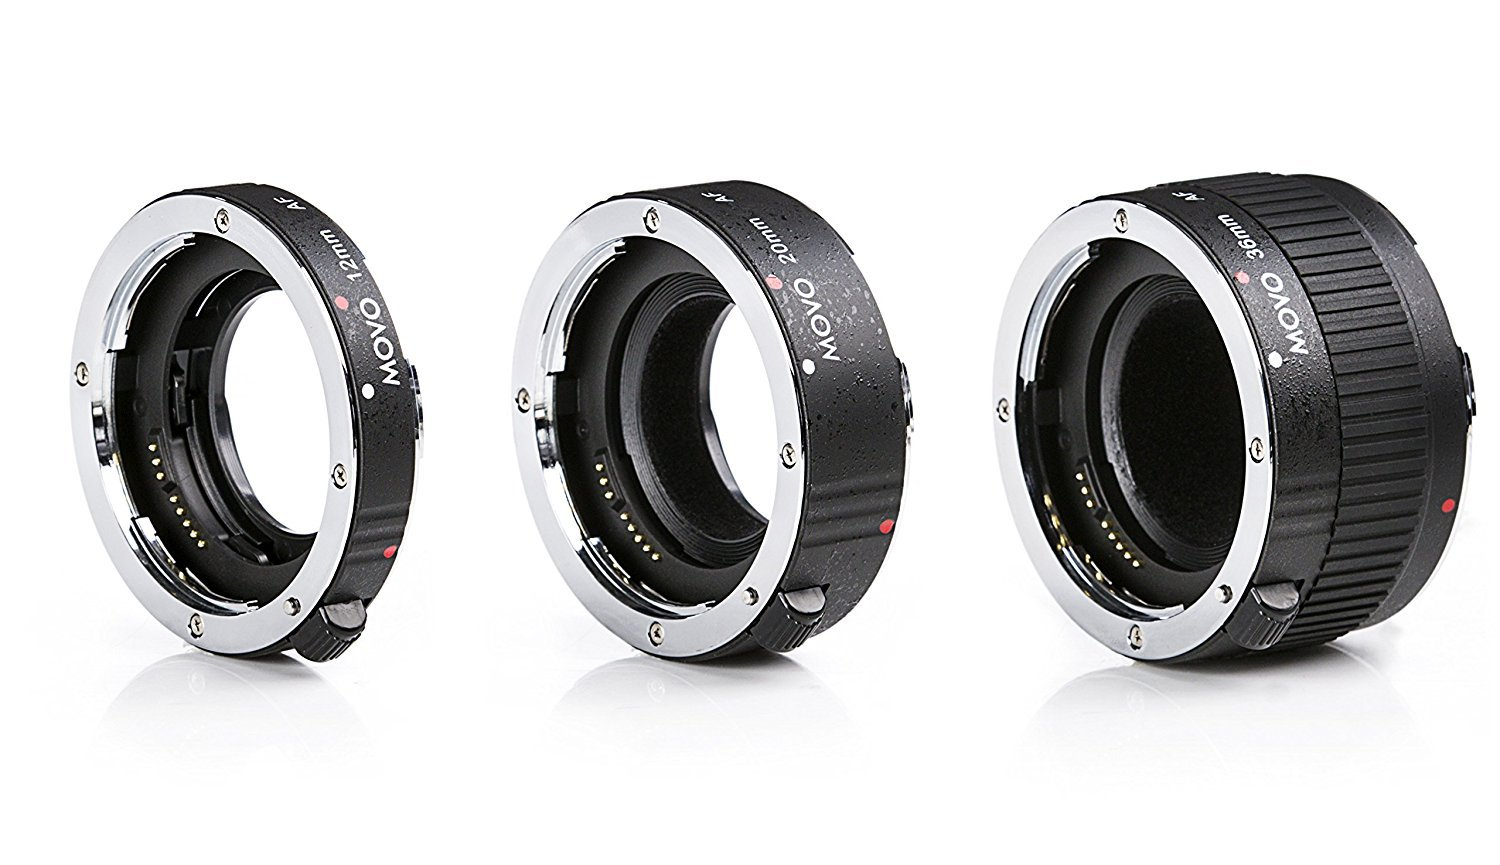 Movo MT-O68 3-Piece AF Chrome Macro Extension Tube Set for Olympus Evolt Four Thirds Mount DSLR Camera with 12mm, 20mm, 36mm Tubes by Movo